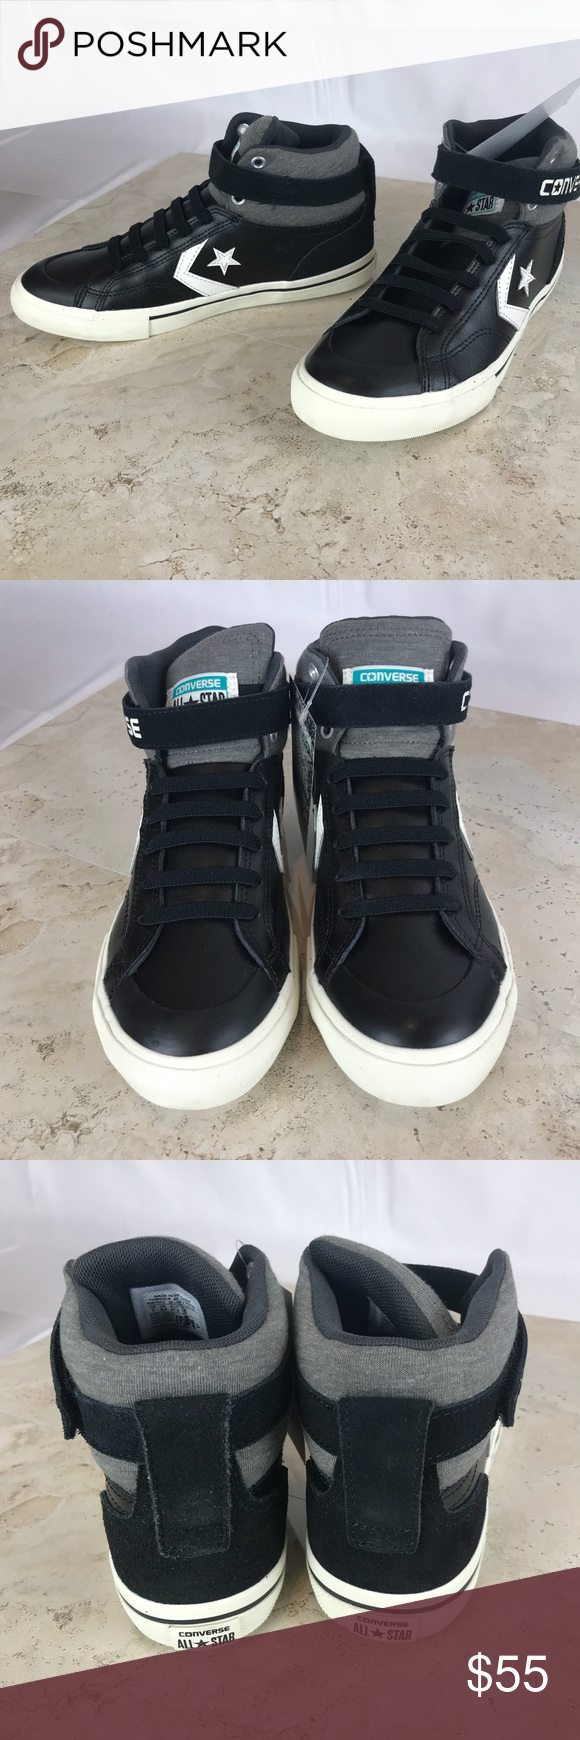 3dfe7fb966c8 Converse Pro Blaze Black Leather Hi tops NWT❣ Make an offer!❤ New in box  without top Women s size 7 7.5 - see pic for size details Converse Shoes ...